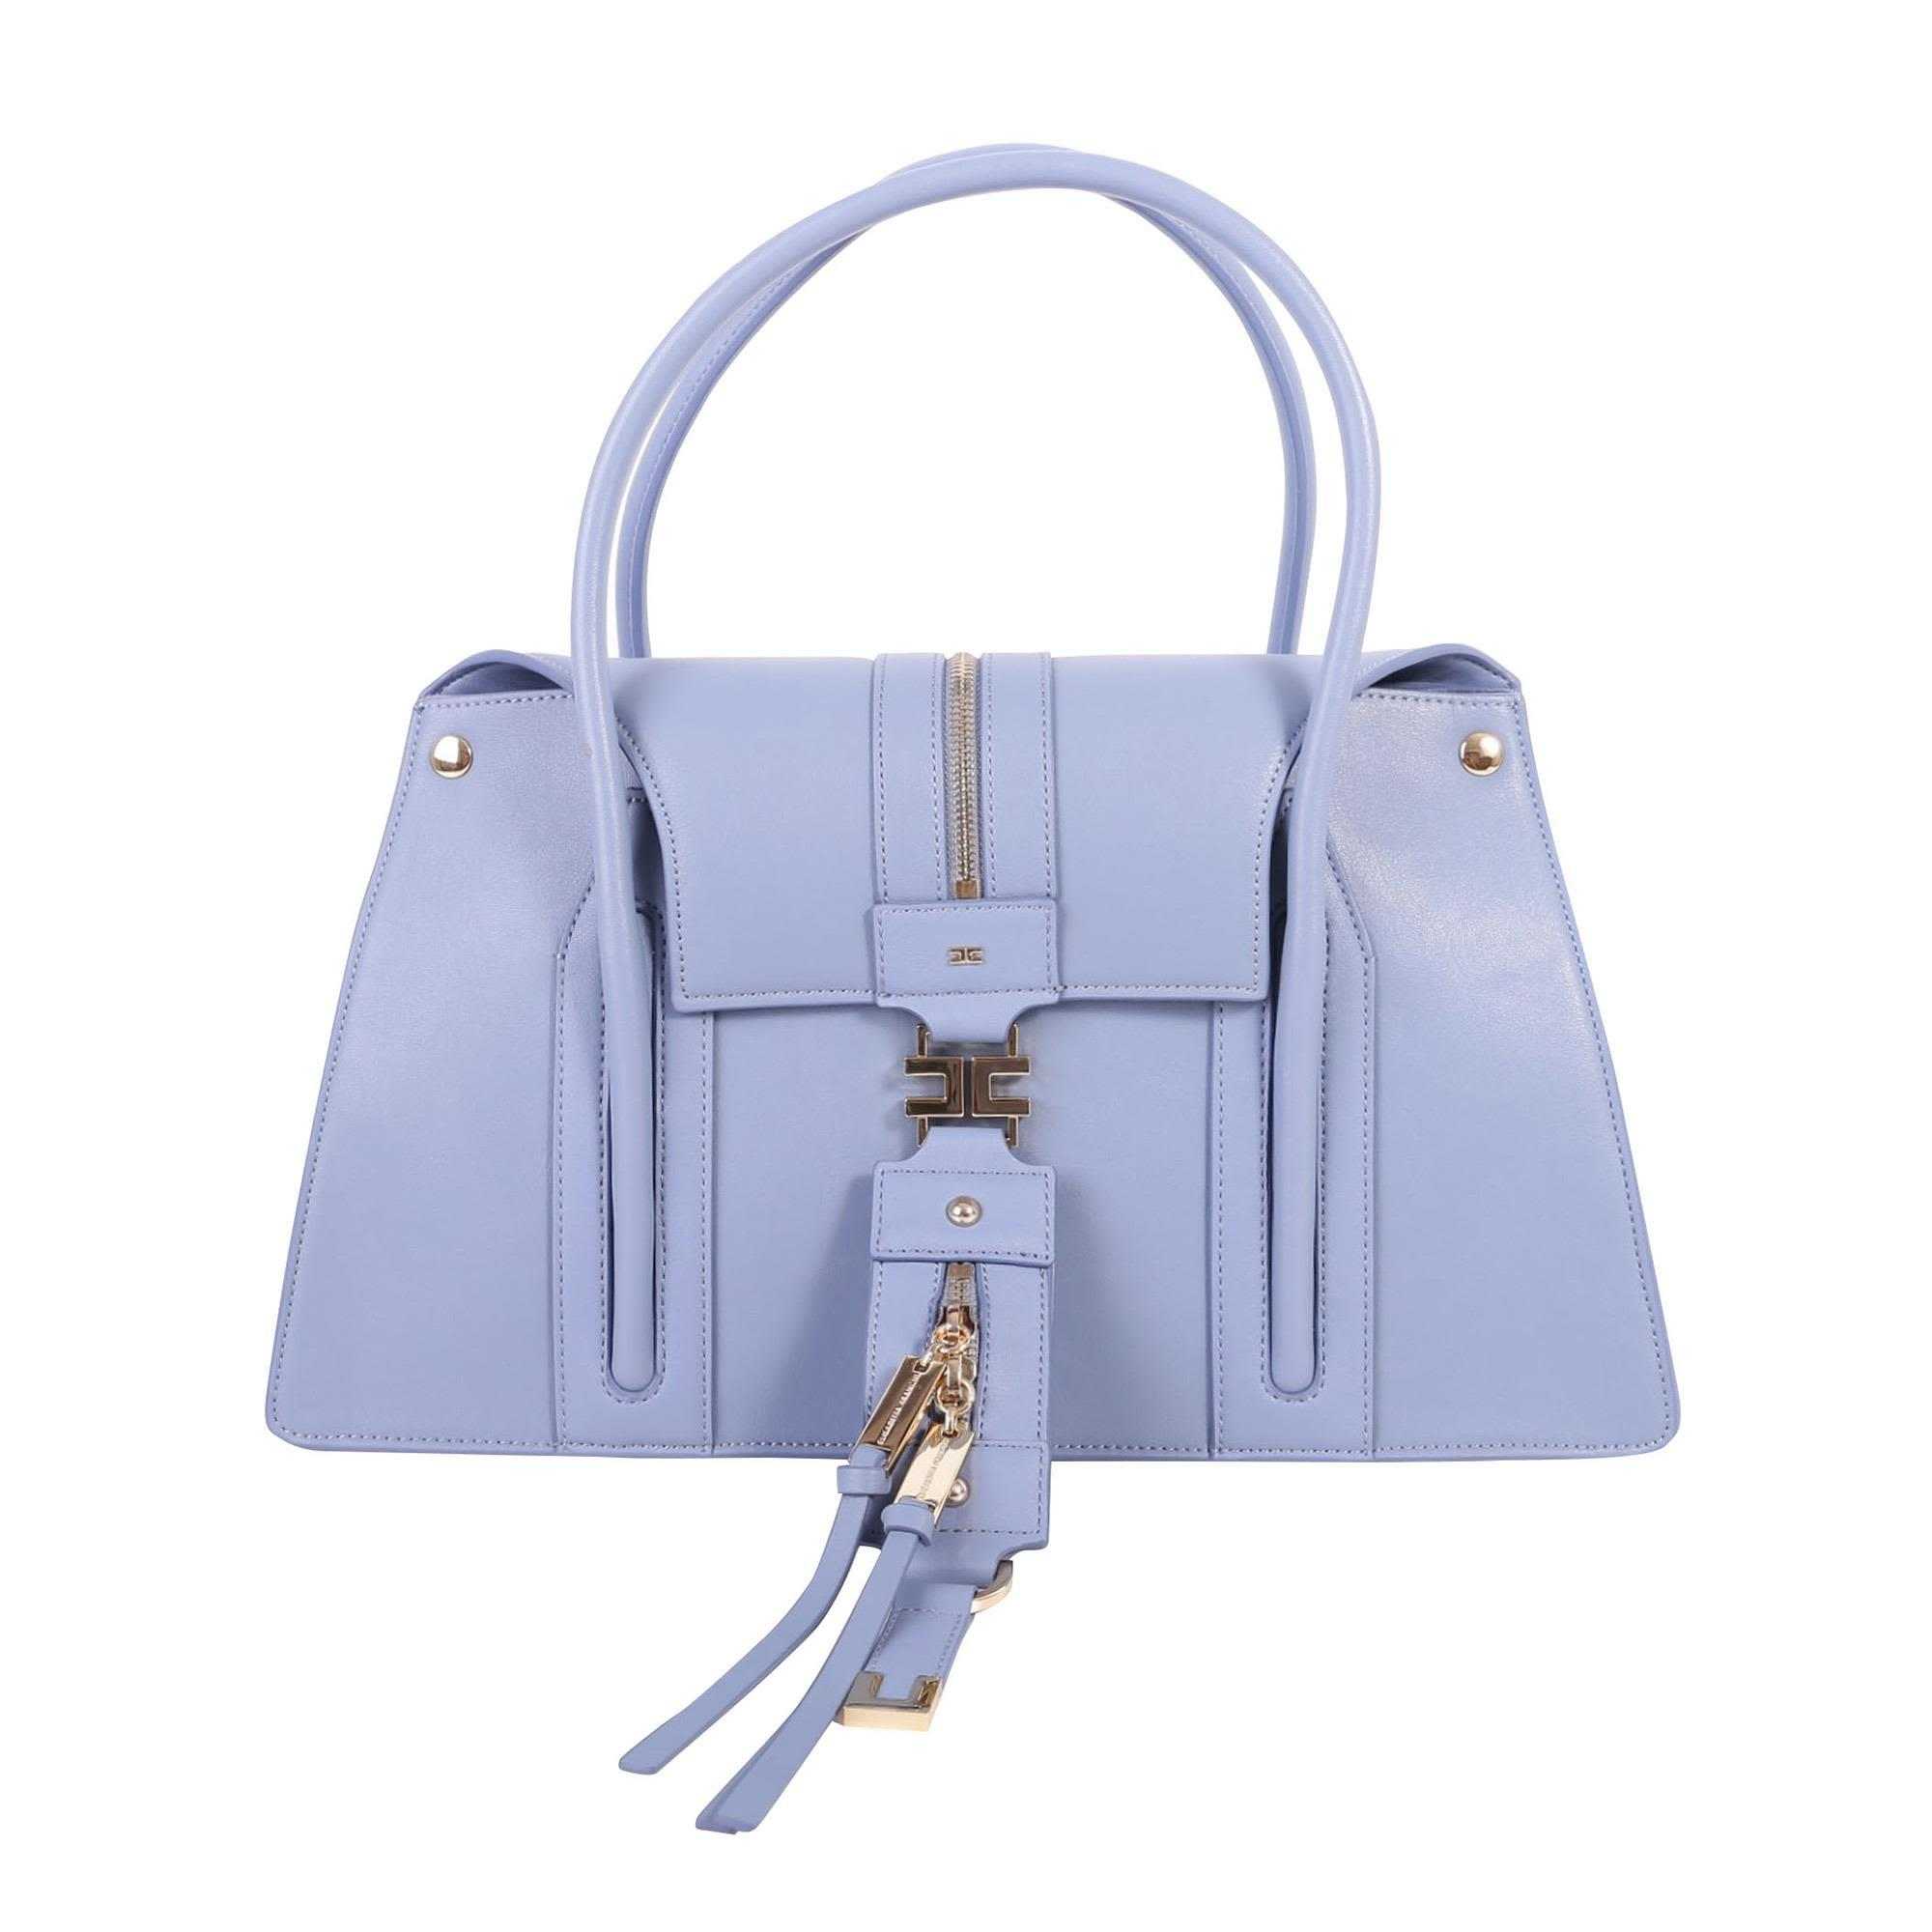 Elisabetta Franchi Celyn B. Top Handle Bag In Smoky Blue